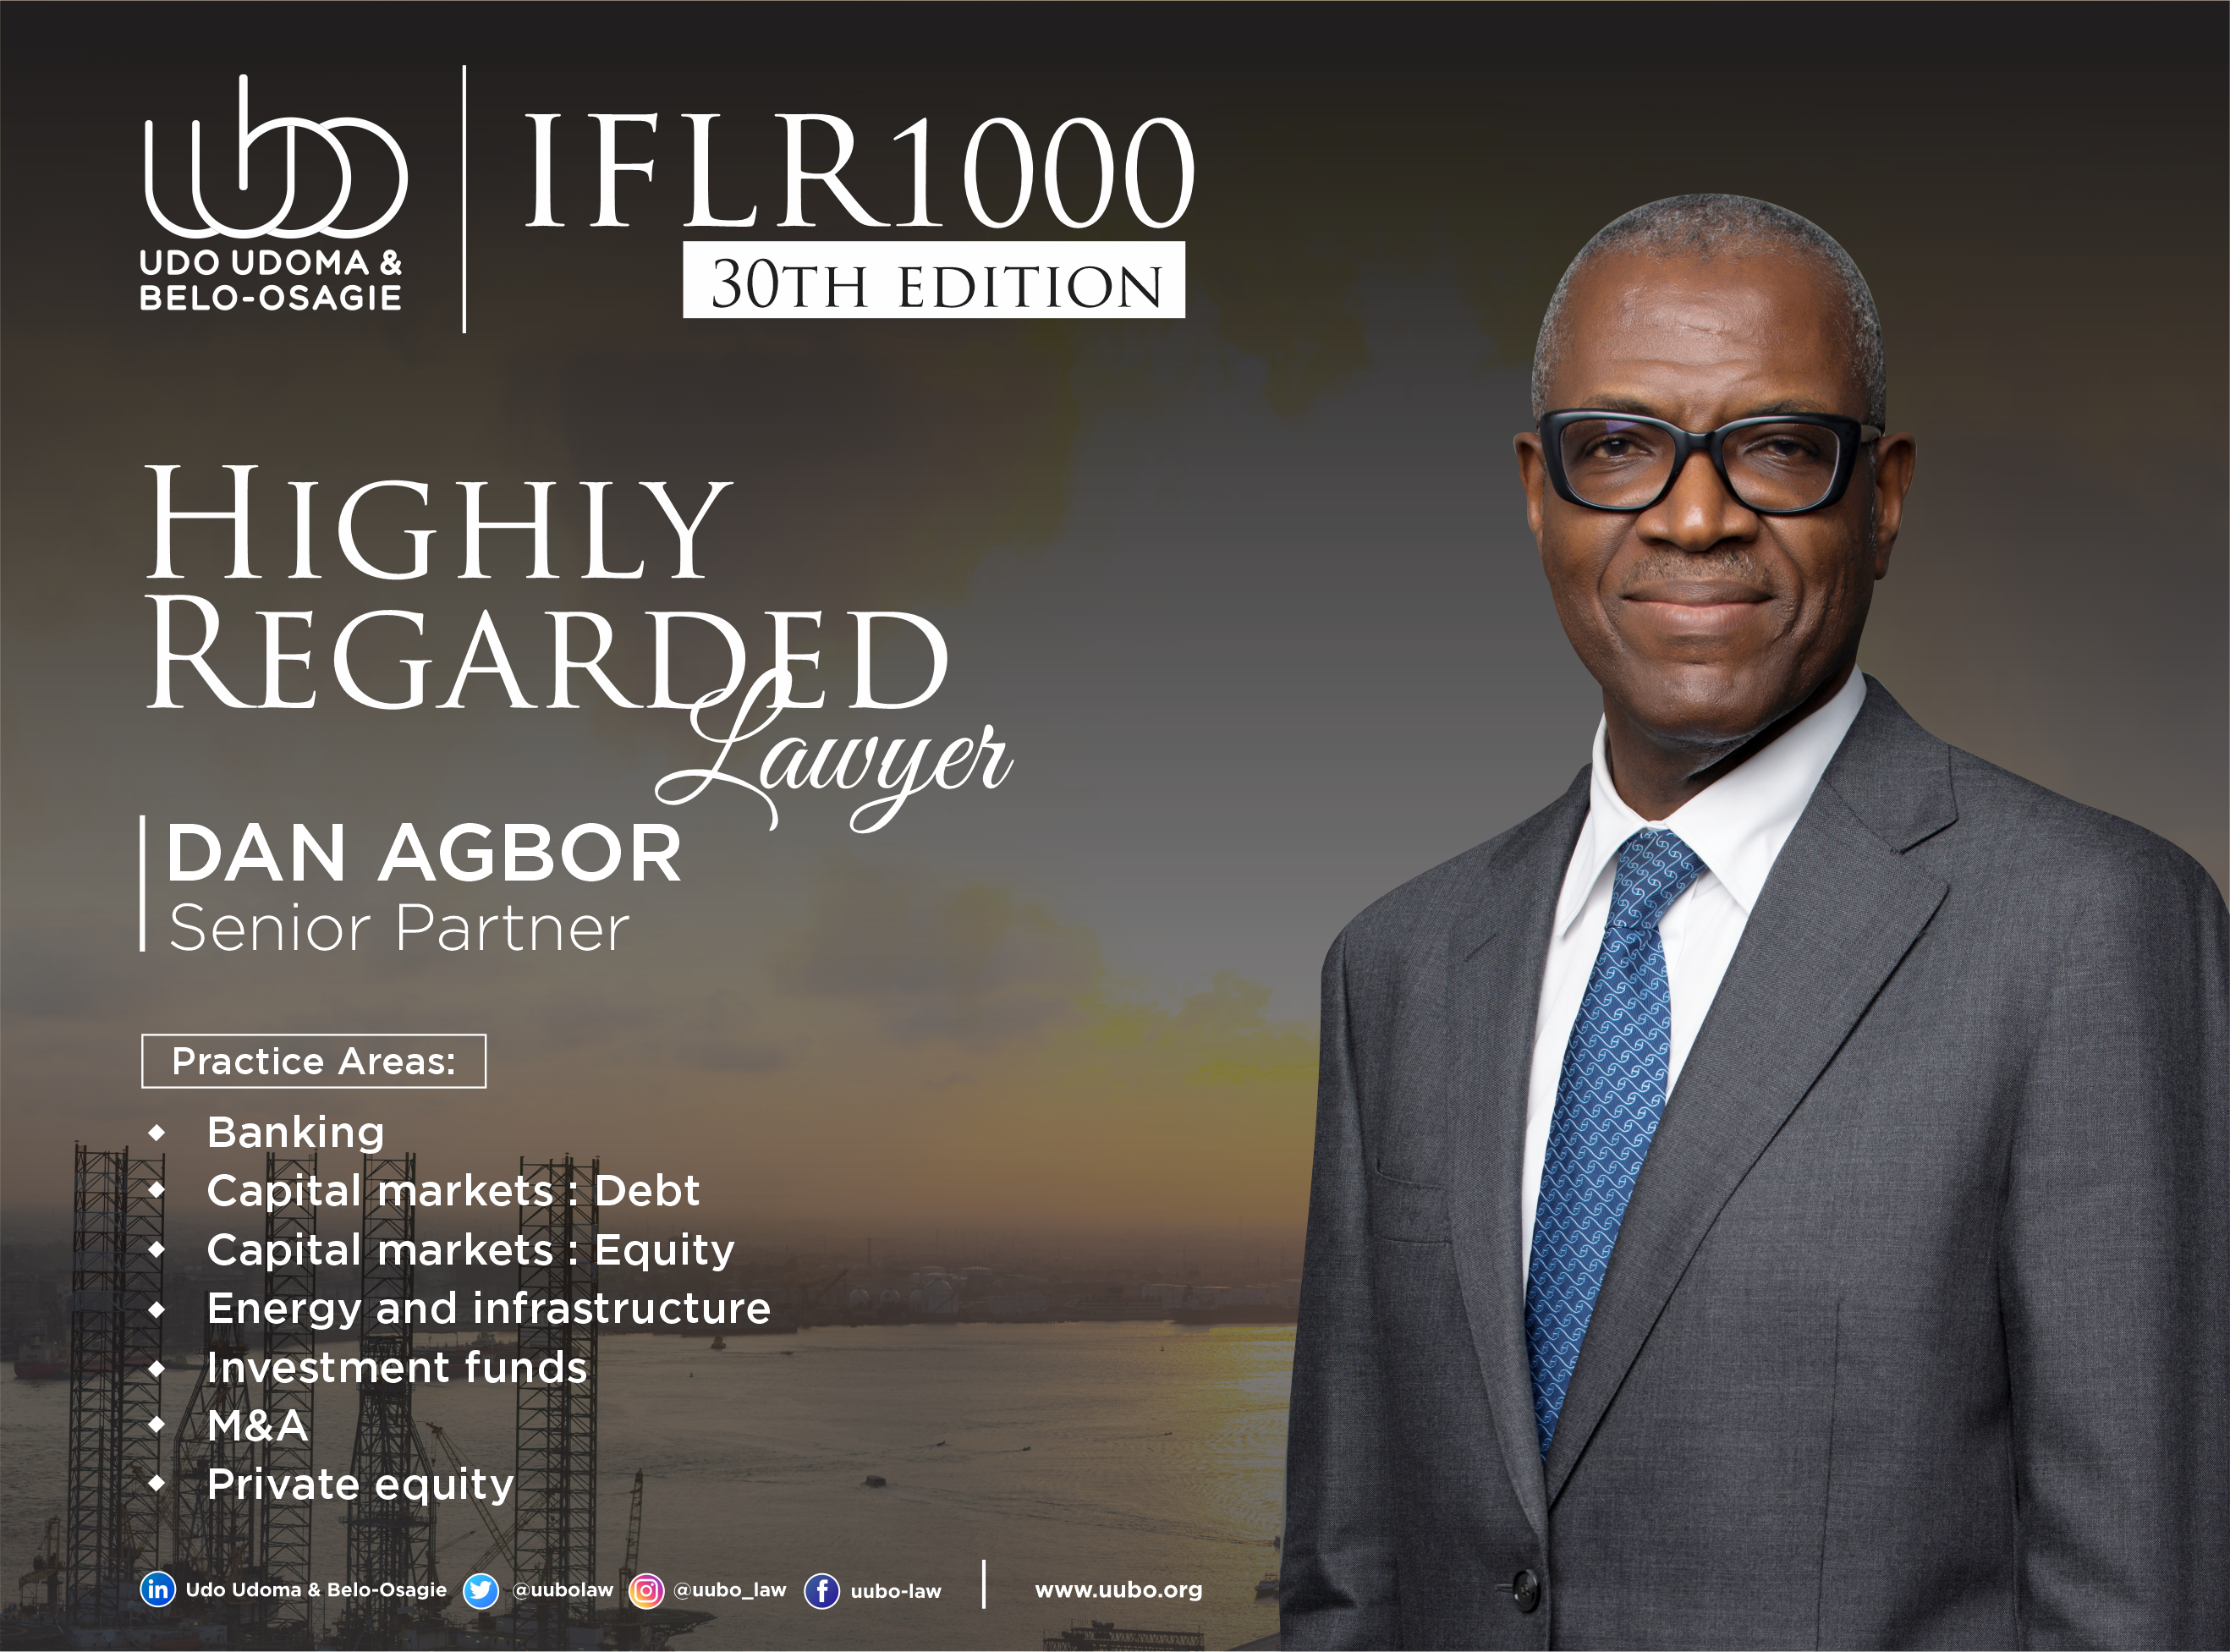 IFLR 100 30Th Edition DAN AGBOR